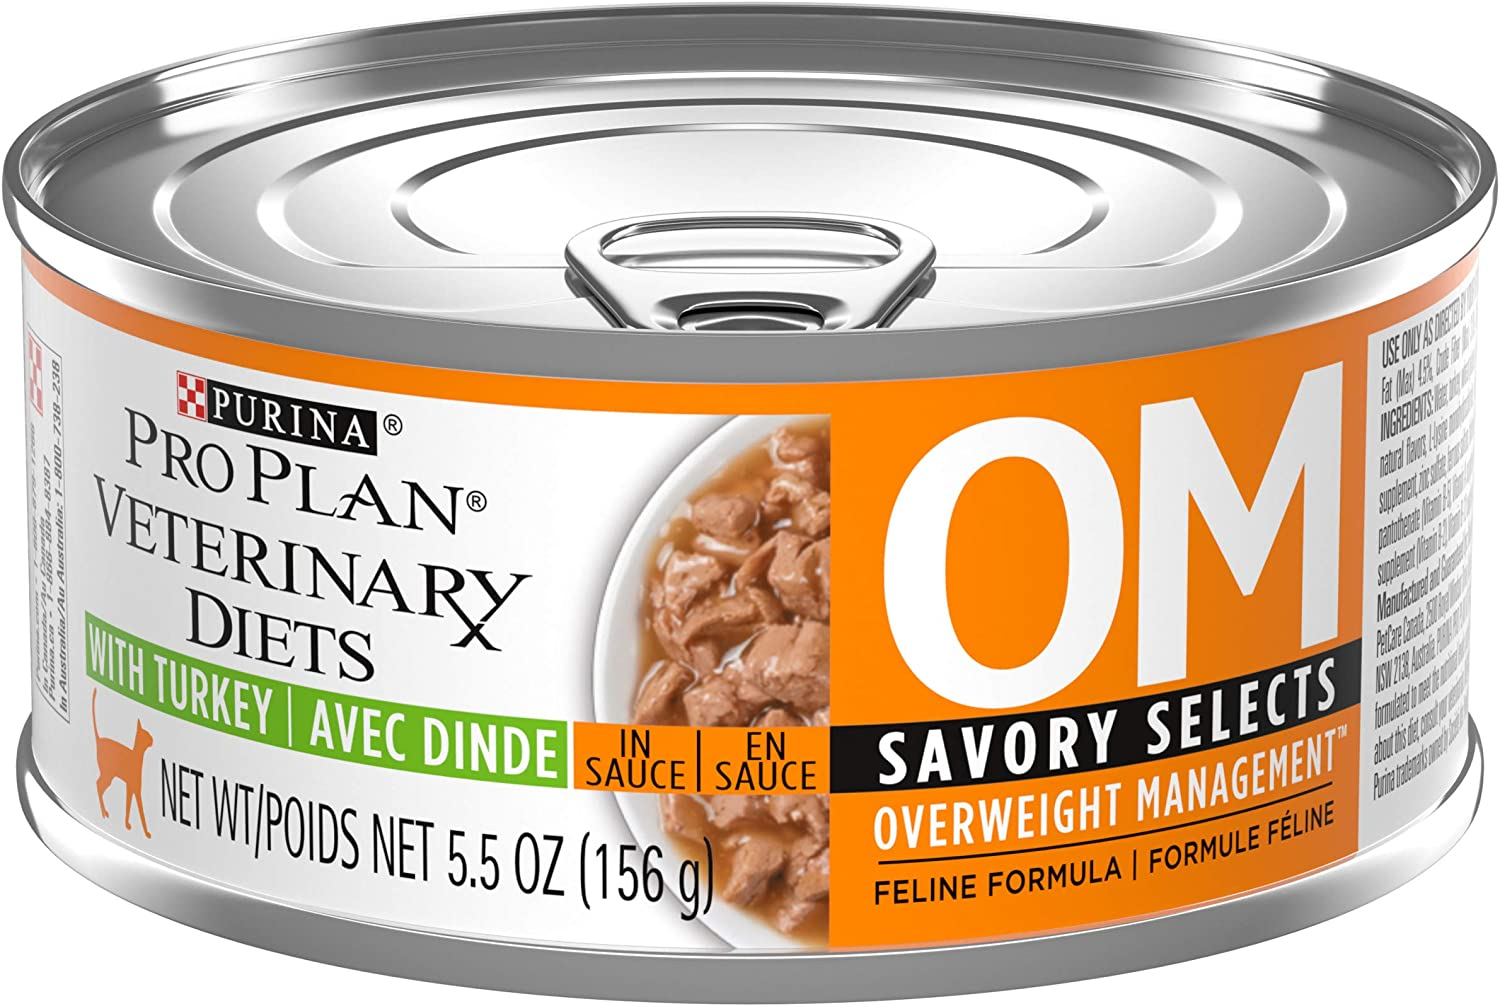 Purina Pro Plan Veterinary Diets OM Overweight Management Savory Selects With Turkey Feline Formula Wet Cat Food - (24) 5.5 oz. Cans